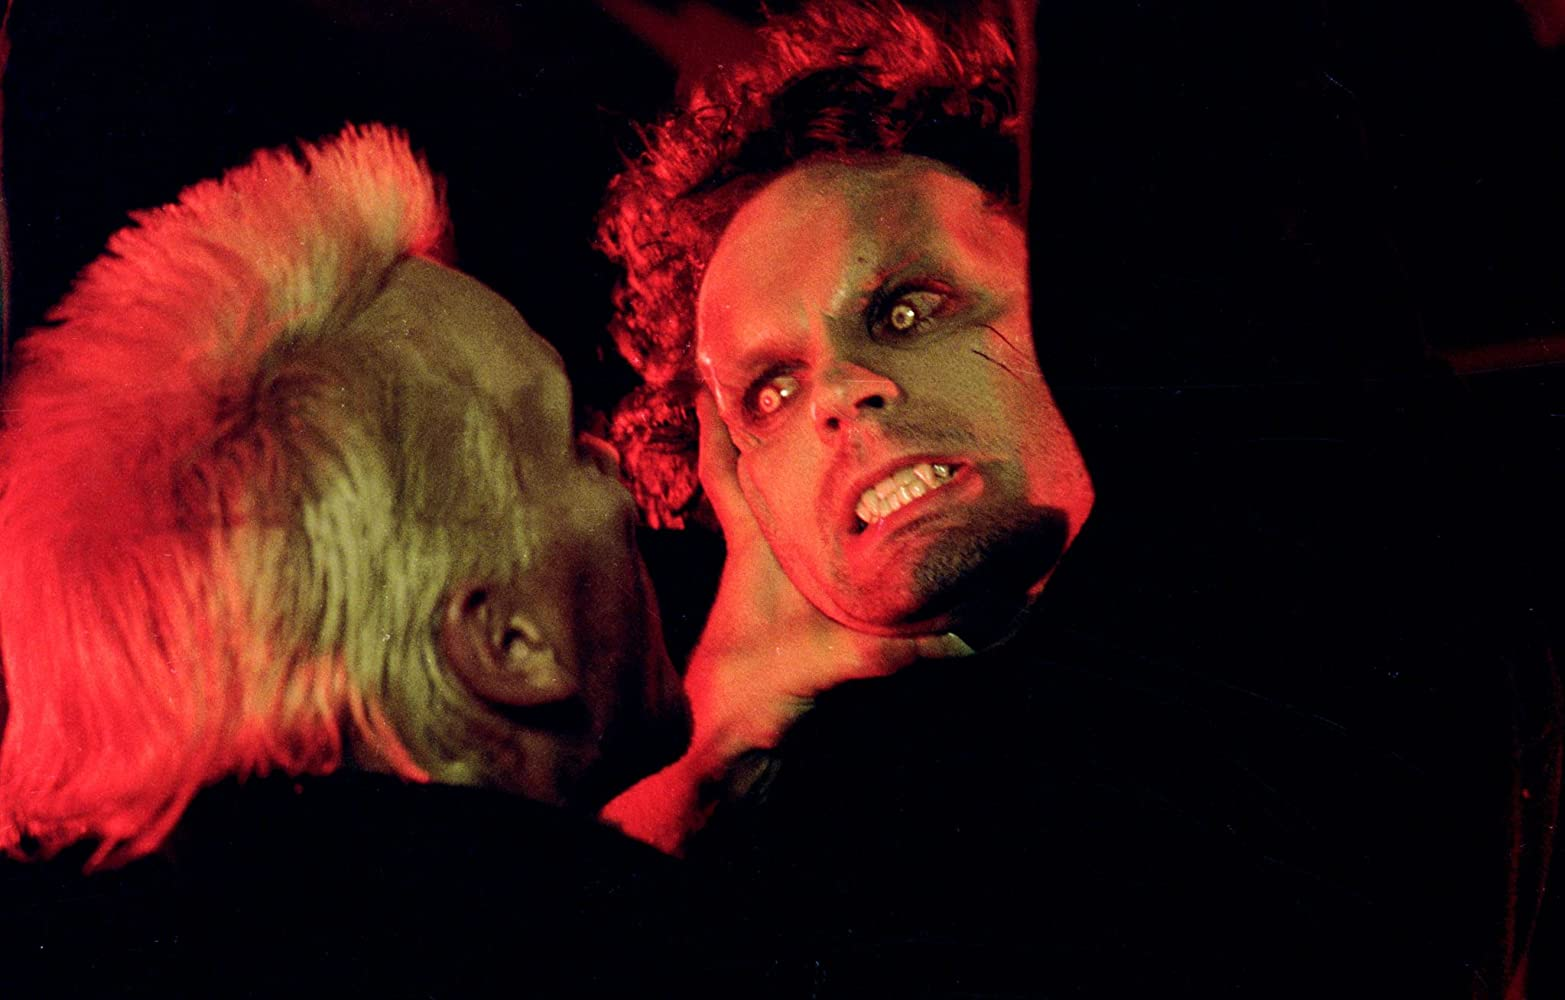 Jason Patric and Kiefer Sutherland in The Lost Boys (1987)